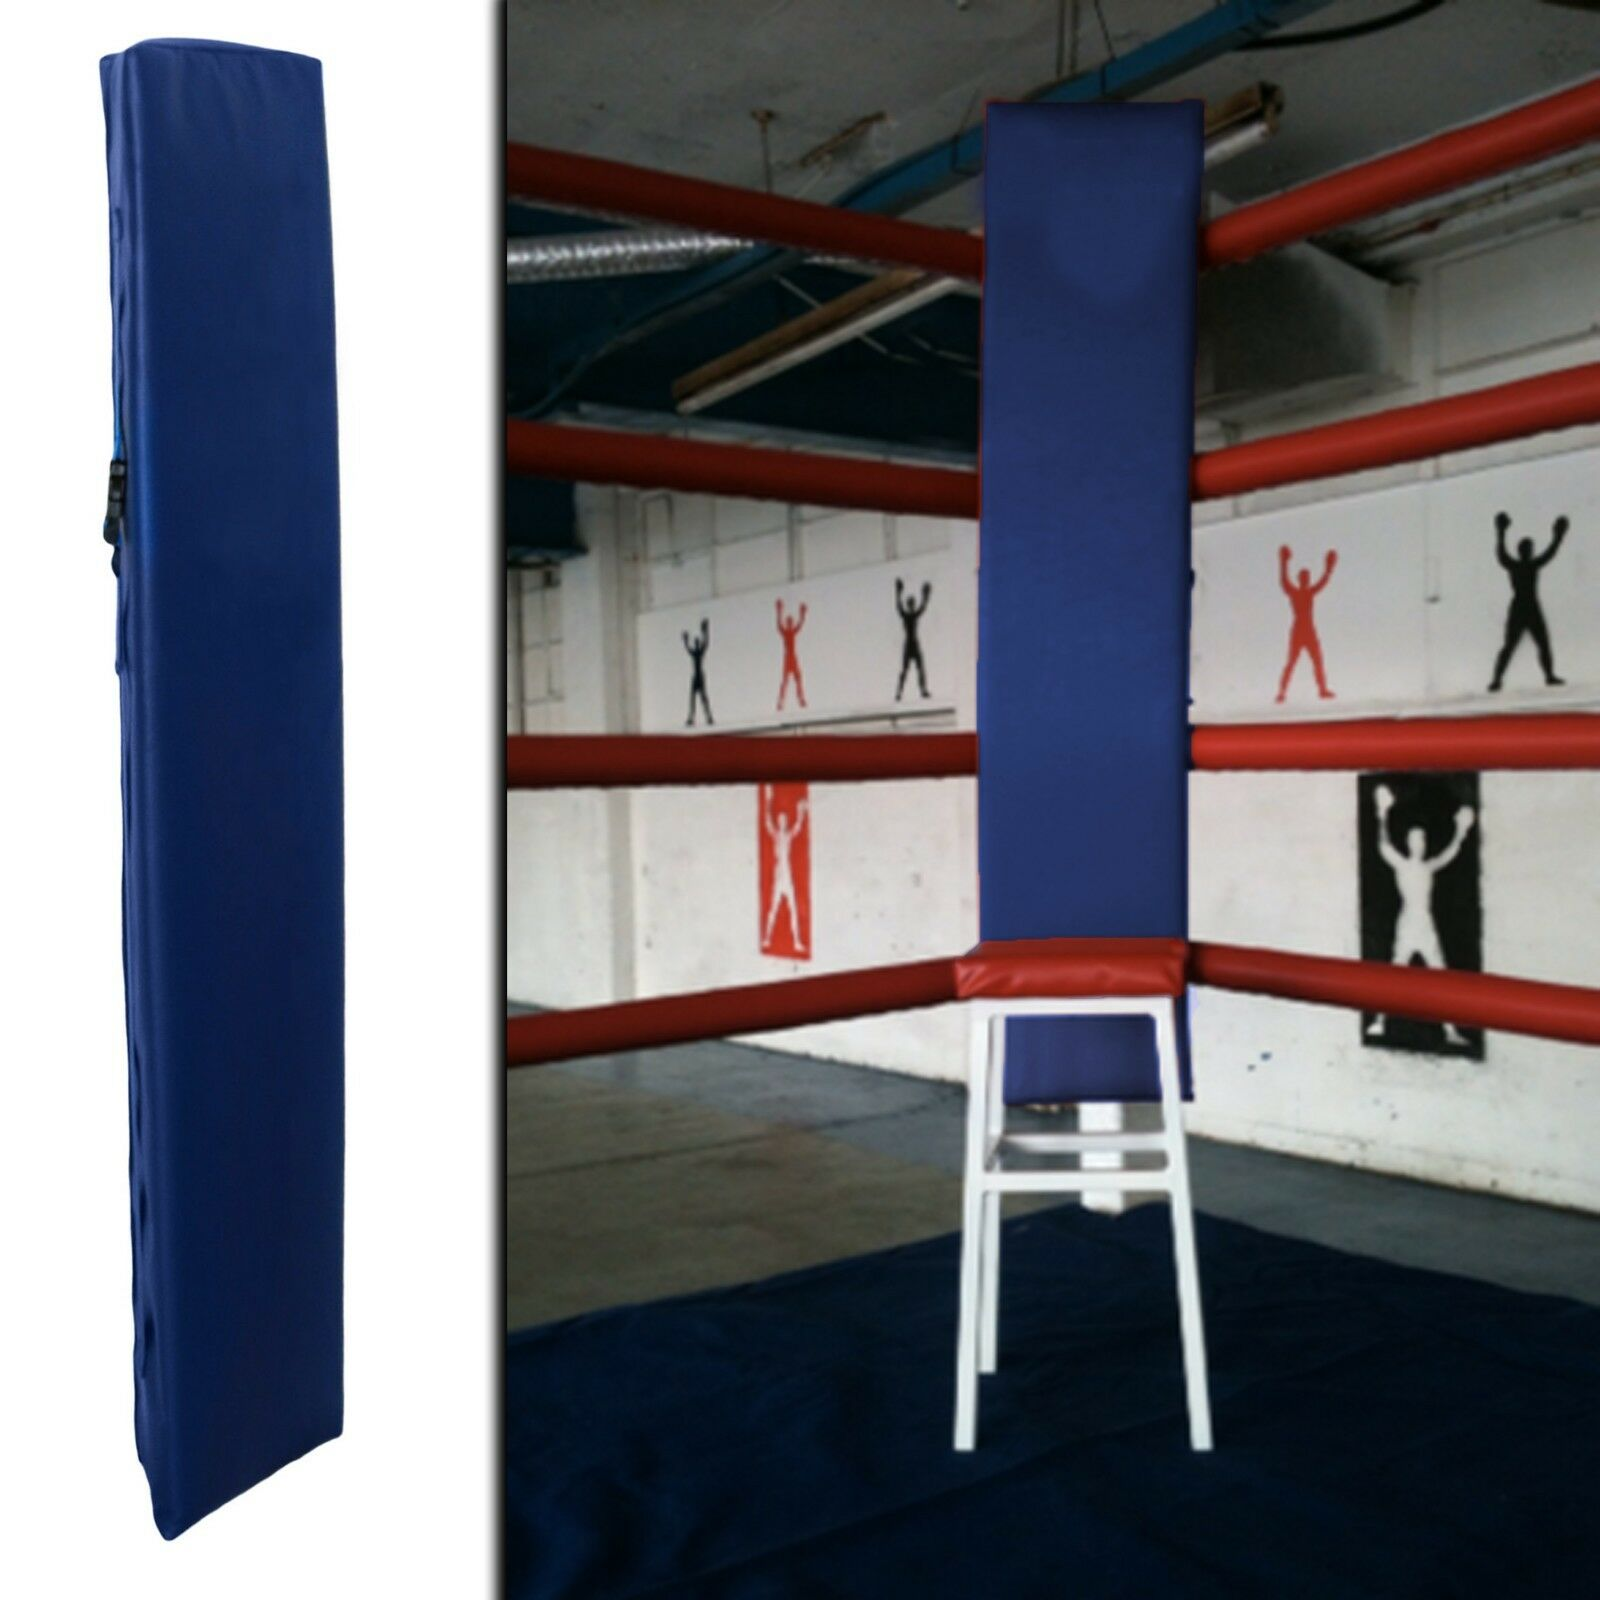 Sporteq Universal Boxing Ring Ring Ring Corner Pads, 4 x 4ft  Adjustable Post Protectors 694e34